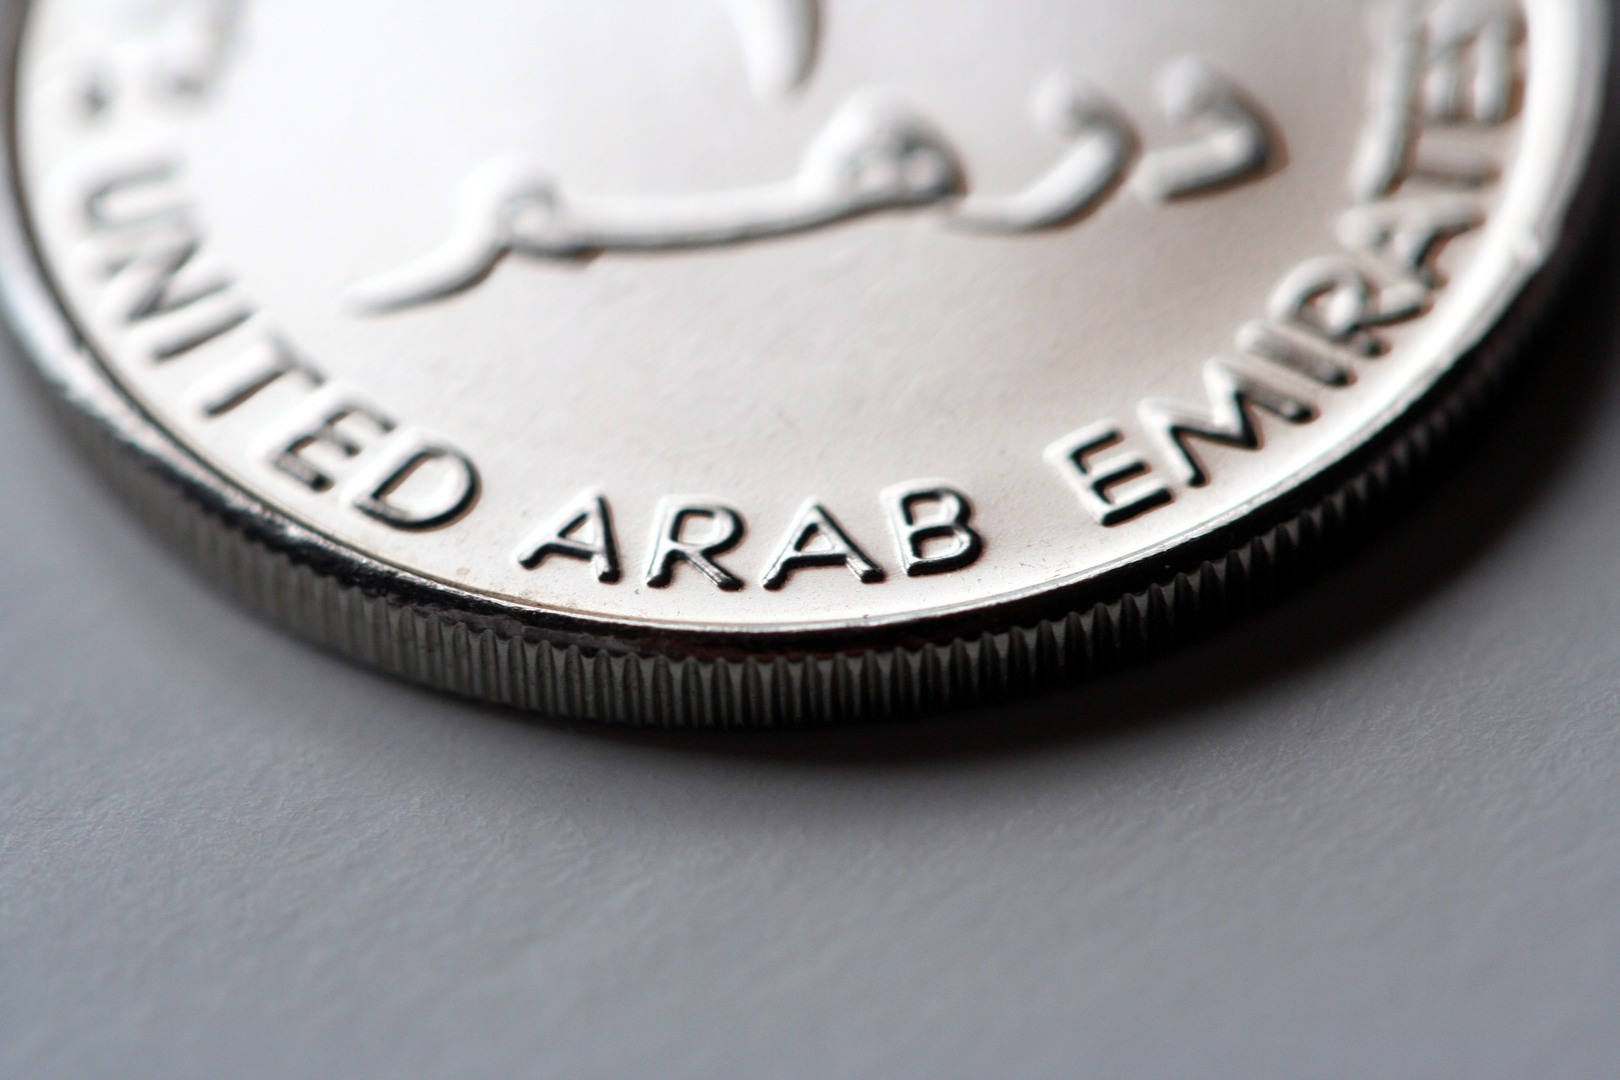 UAE embassy attestation – First step towards ceasing a job opportunity